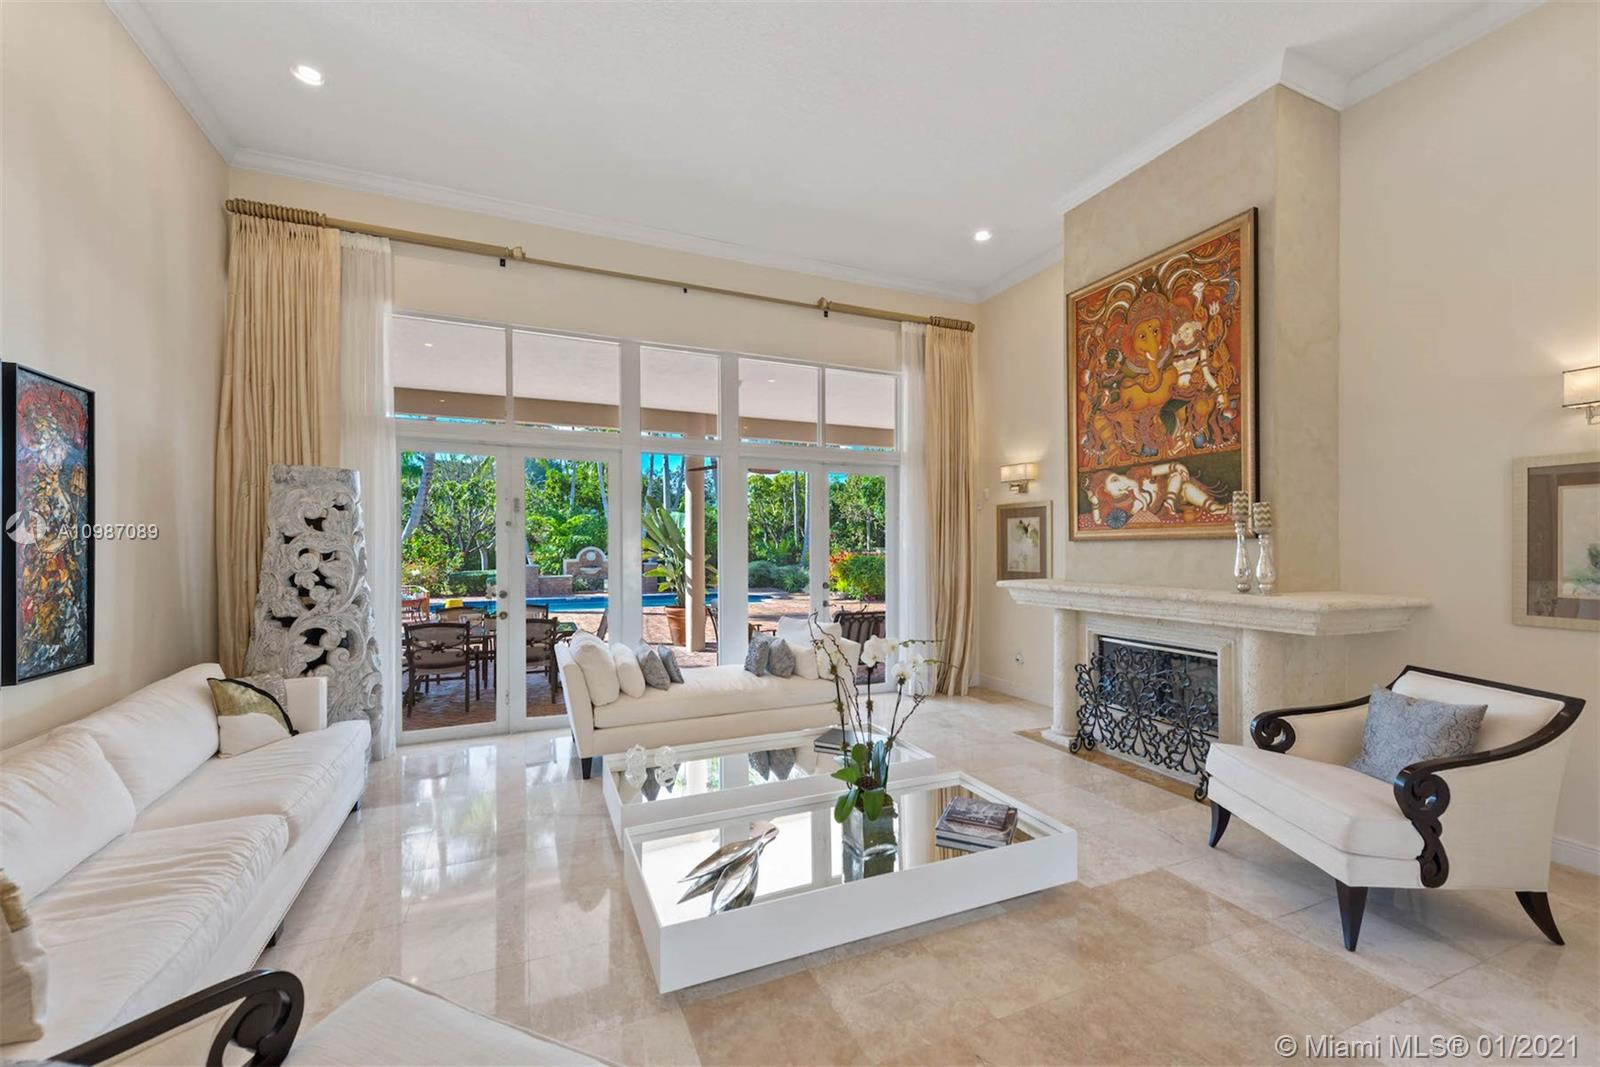 10110 SW 72nd Ave, Pinecrest, Florida 33156, 5 Bedrooms Bedrooms, ,5 BathroomsBathrooms,Residential,For Sale,10110 SW 72nd Ave,A10987089